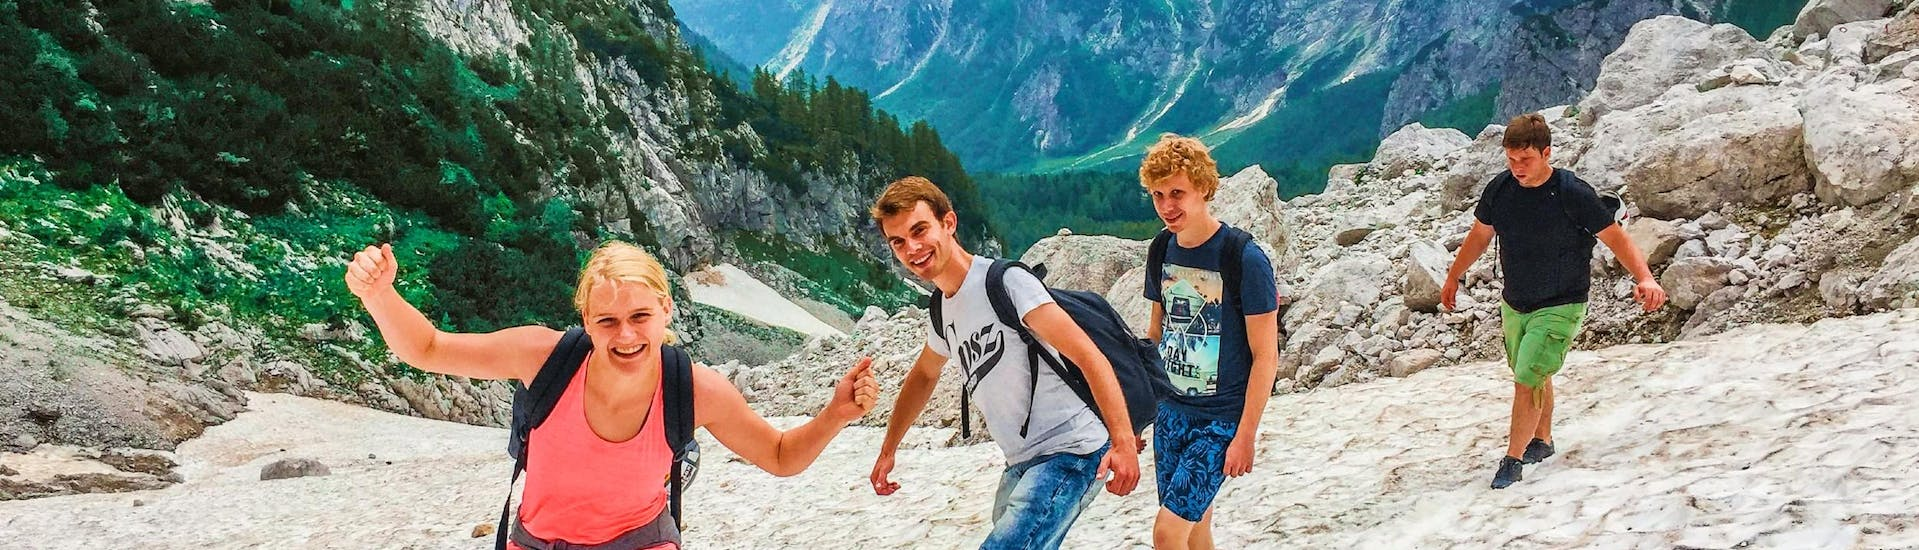 A group of friends is having fun during the Guided Hike to the Top of Raduha Mountain (2062m) with Funpark Menina.